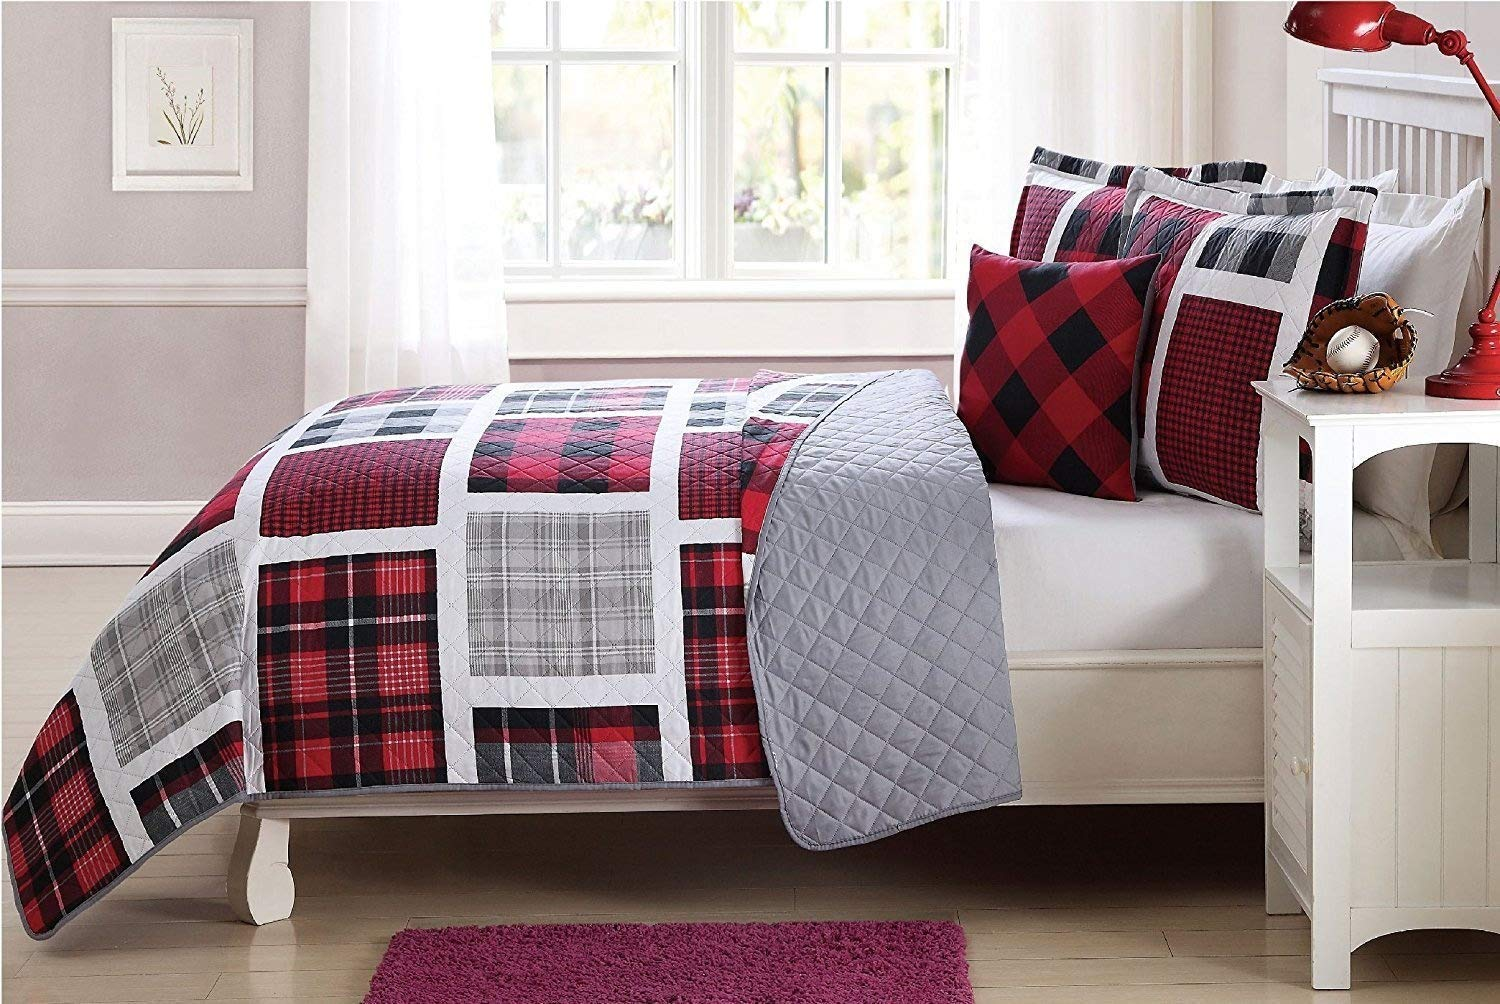 Elegant Home Multicolor Red Black White Grey Printed Plaid Patchwork Design Colorful 3 Piece Quilt Bedspread Bedding Set with Decorative Pillow for Kids/Boys # Plaid (Twin Size)